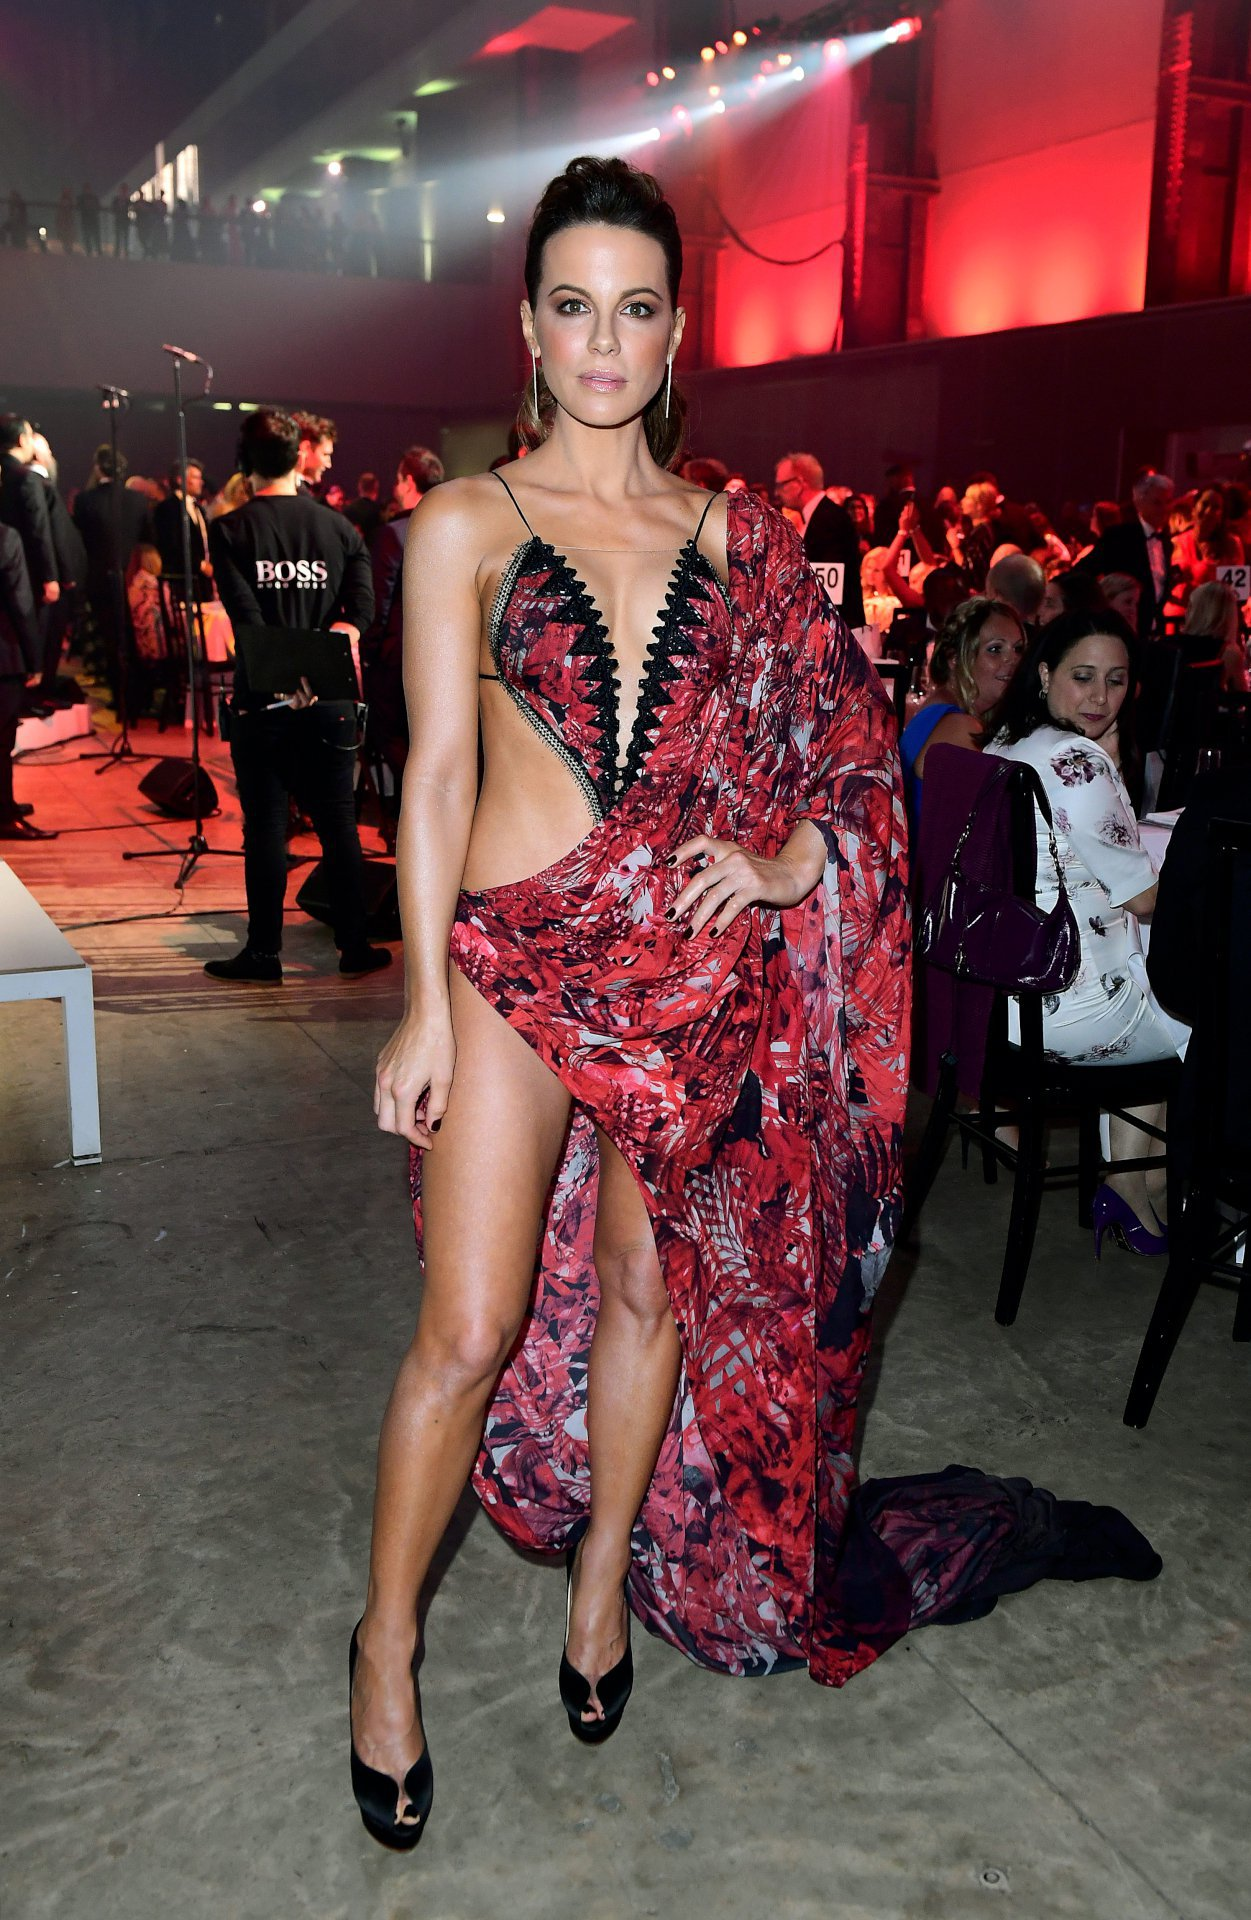 Kate Beckinsale Leaves Nothing to the Imagination in Revealing Cut-Out Red Dress [SFW PICS]